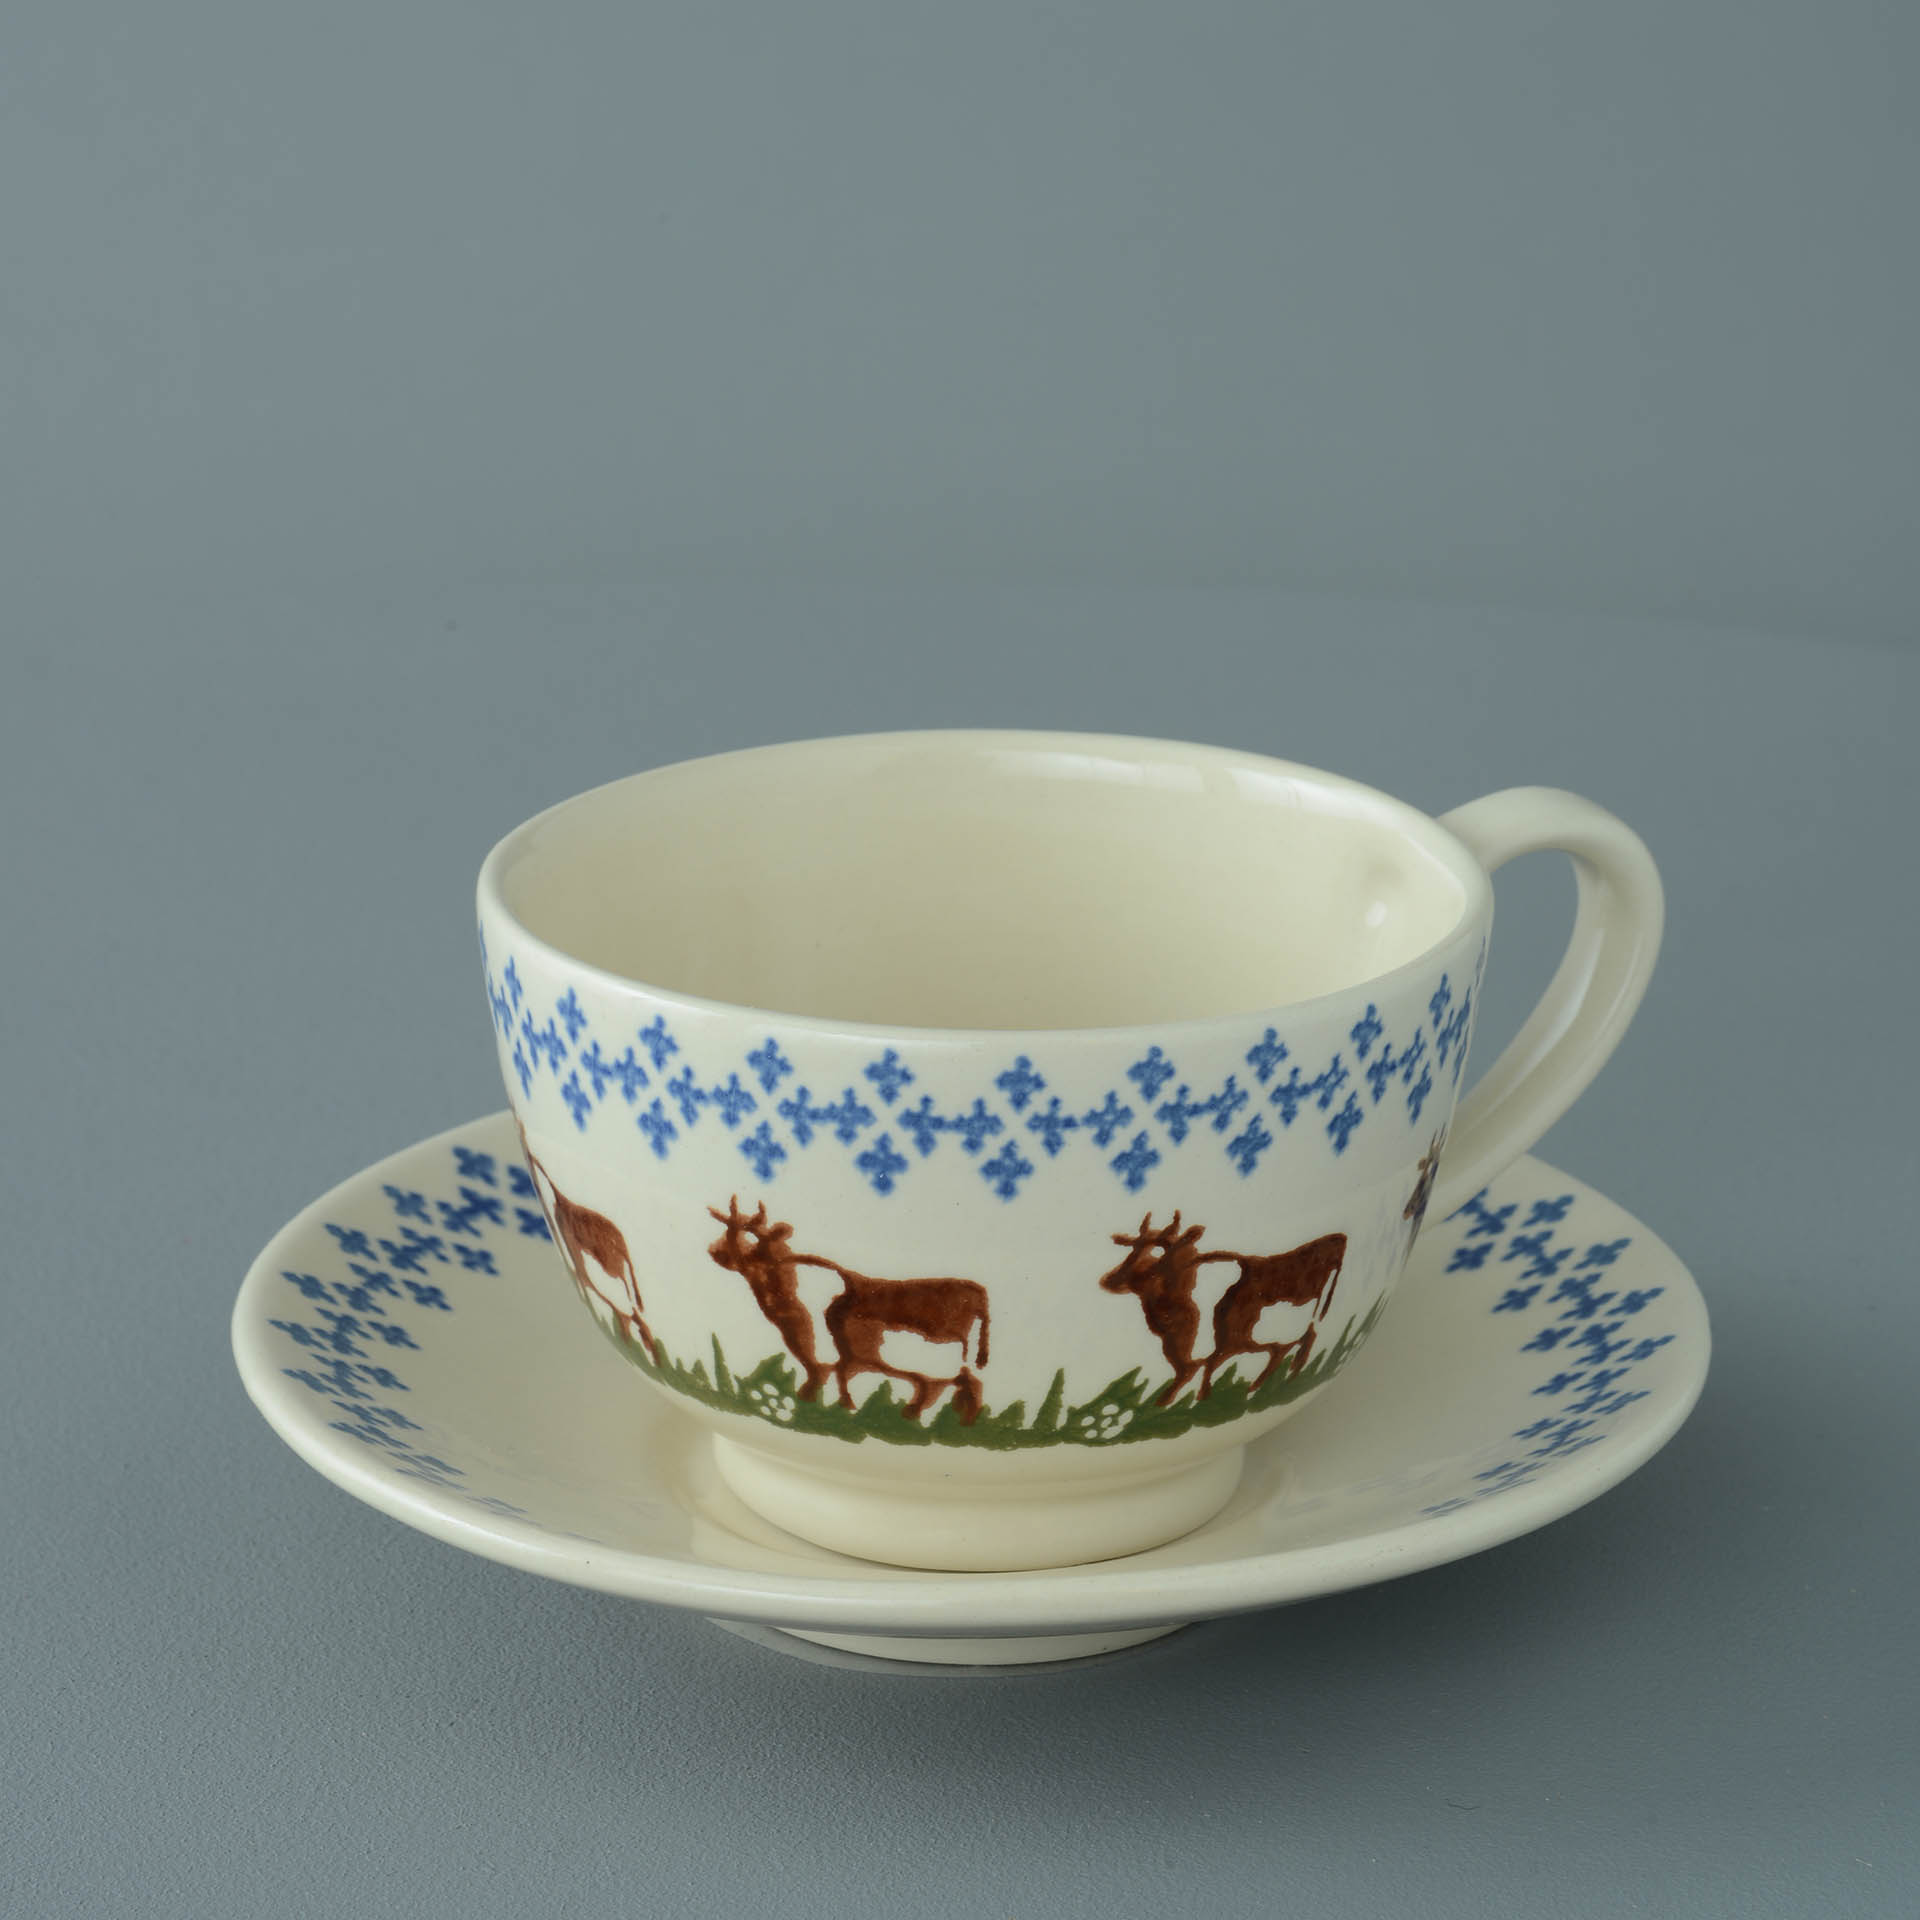 Cows Breakfast Cup and Saucer